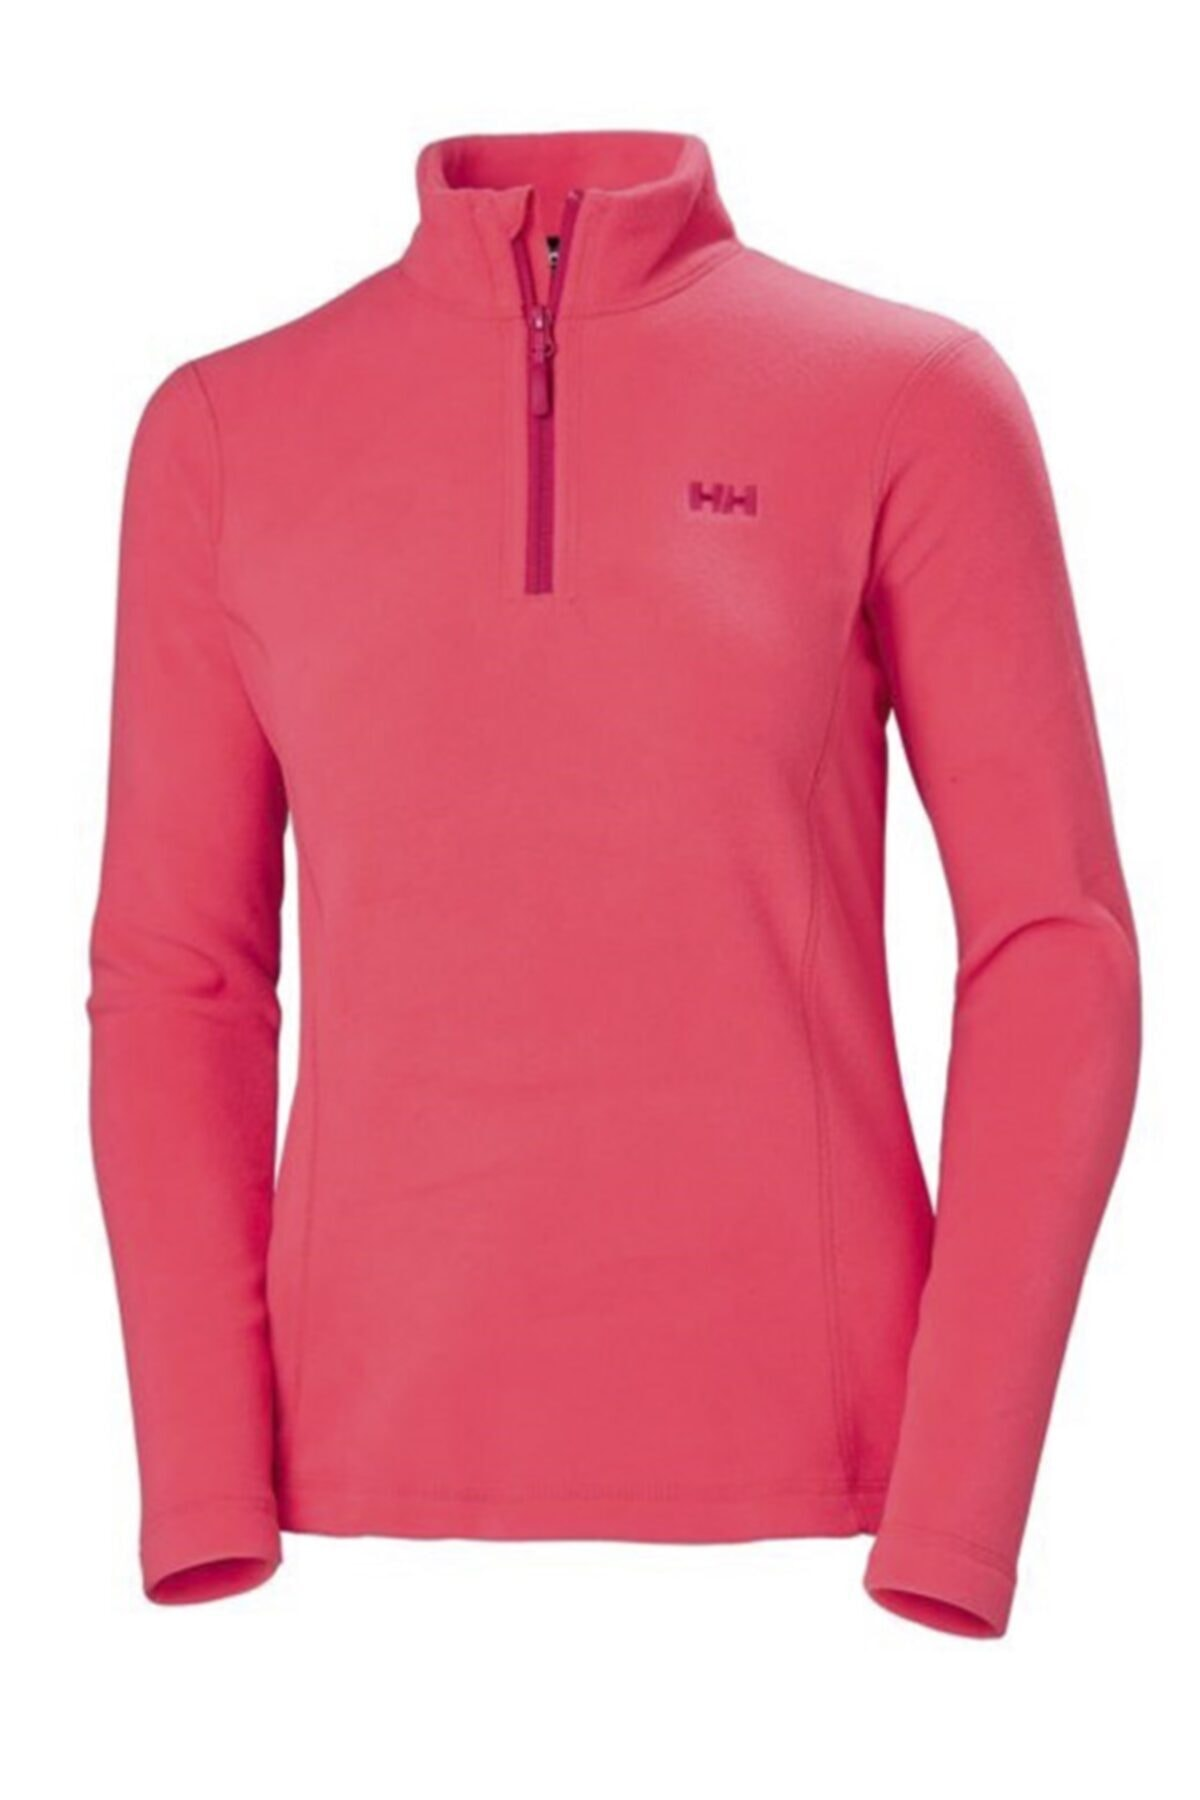 Helly Hansen Kadın Polar Fleece Pembe 197 1